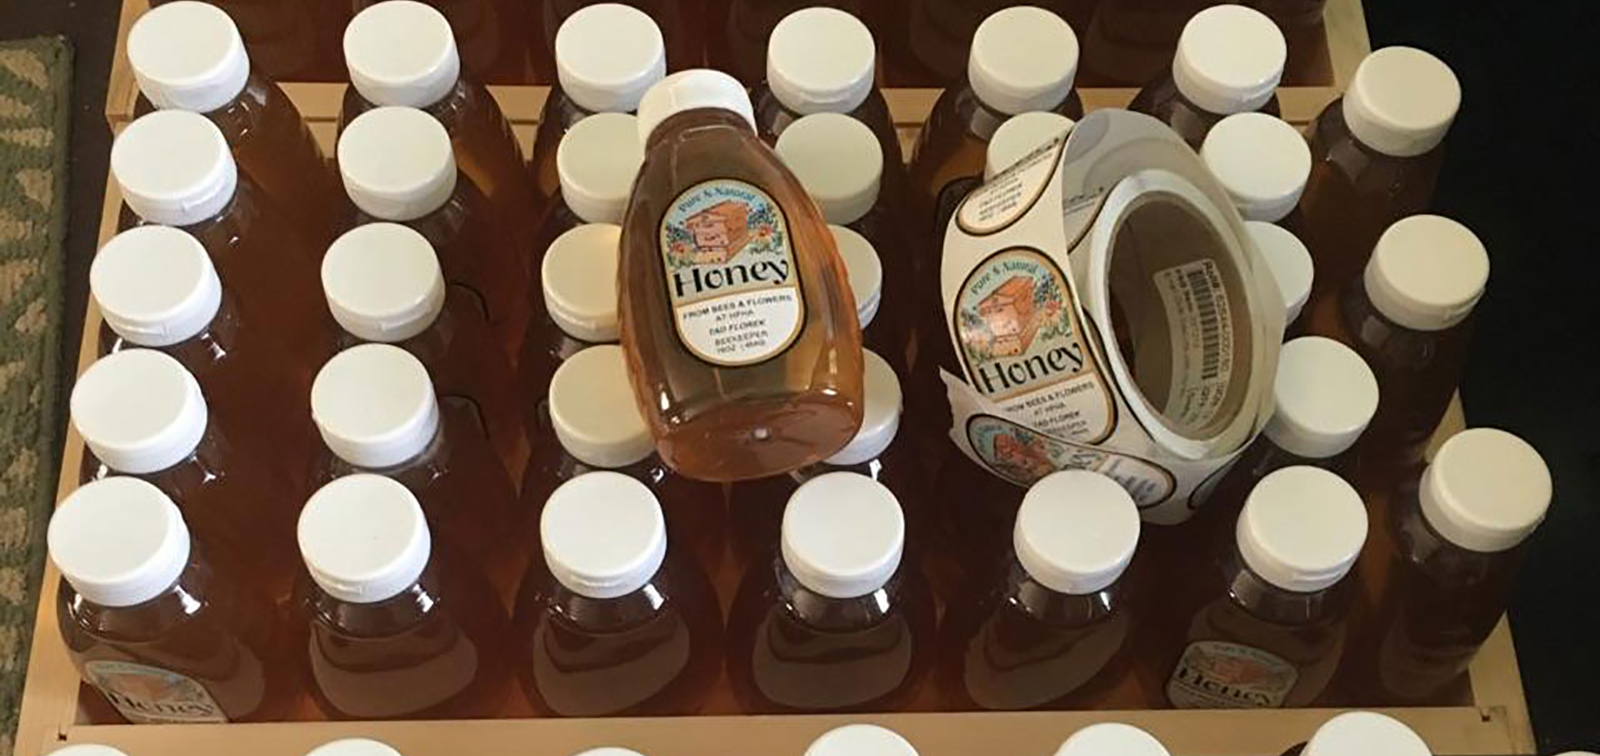 photo of honey bottles